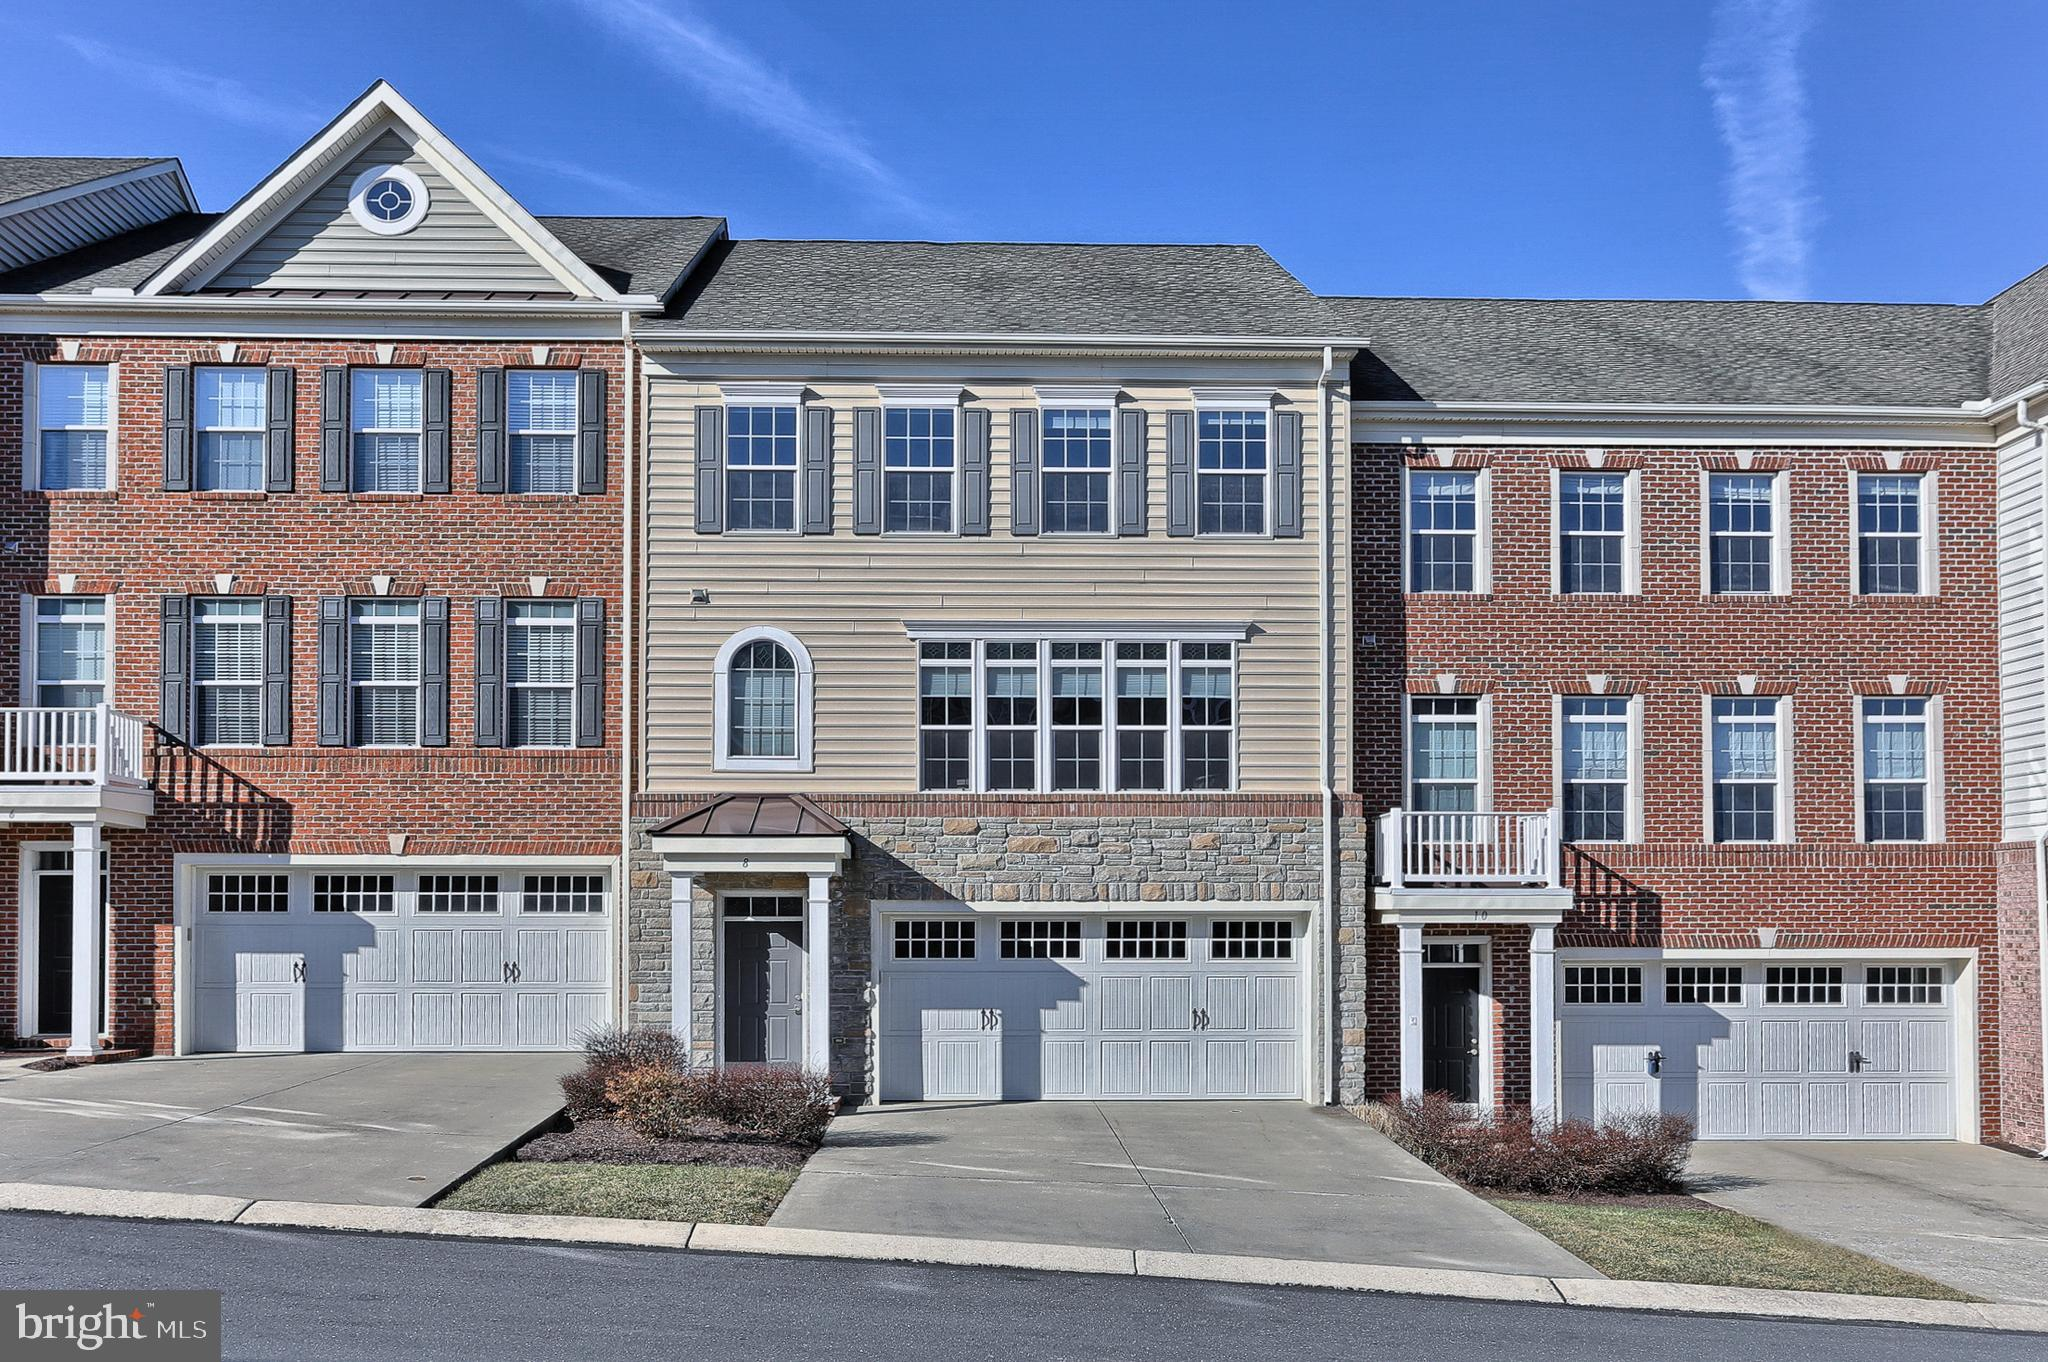 8 INDIANA CIRCLE, LEMOYNE, PA 17043